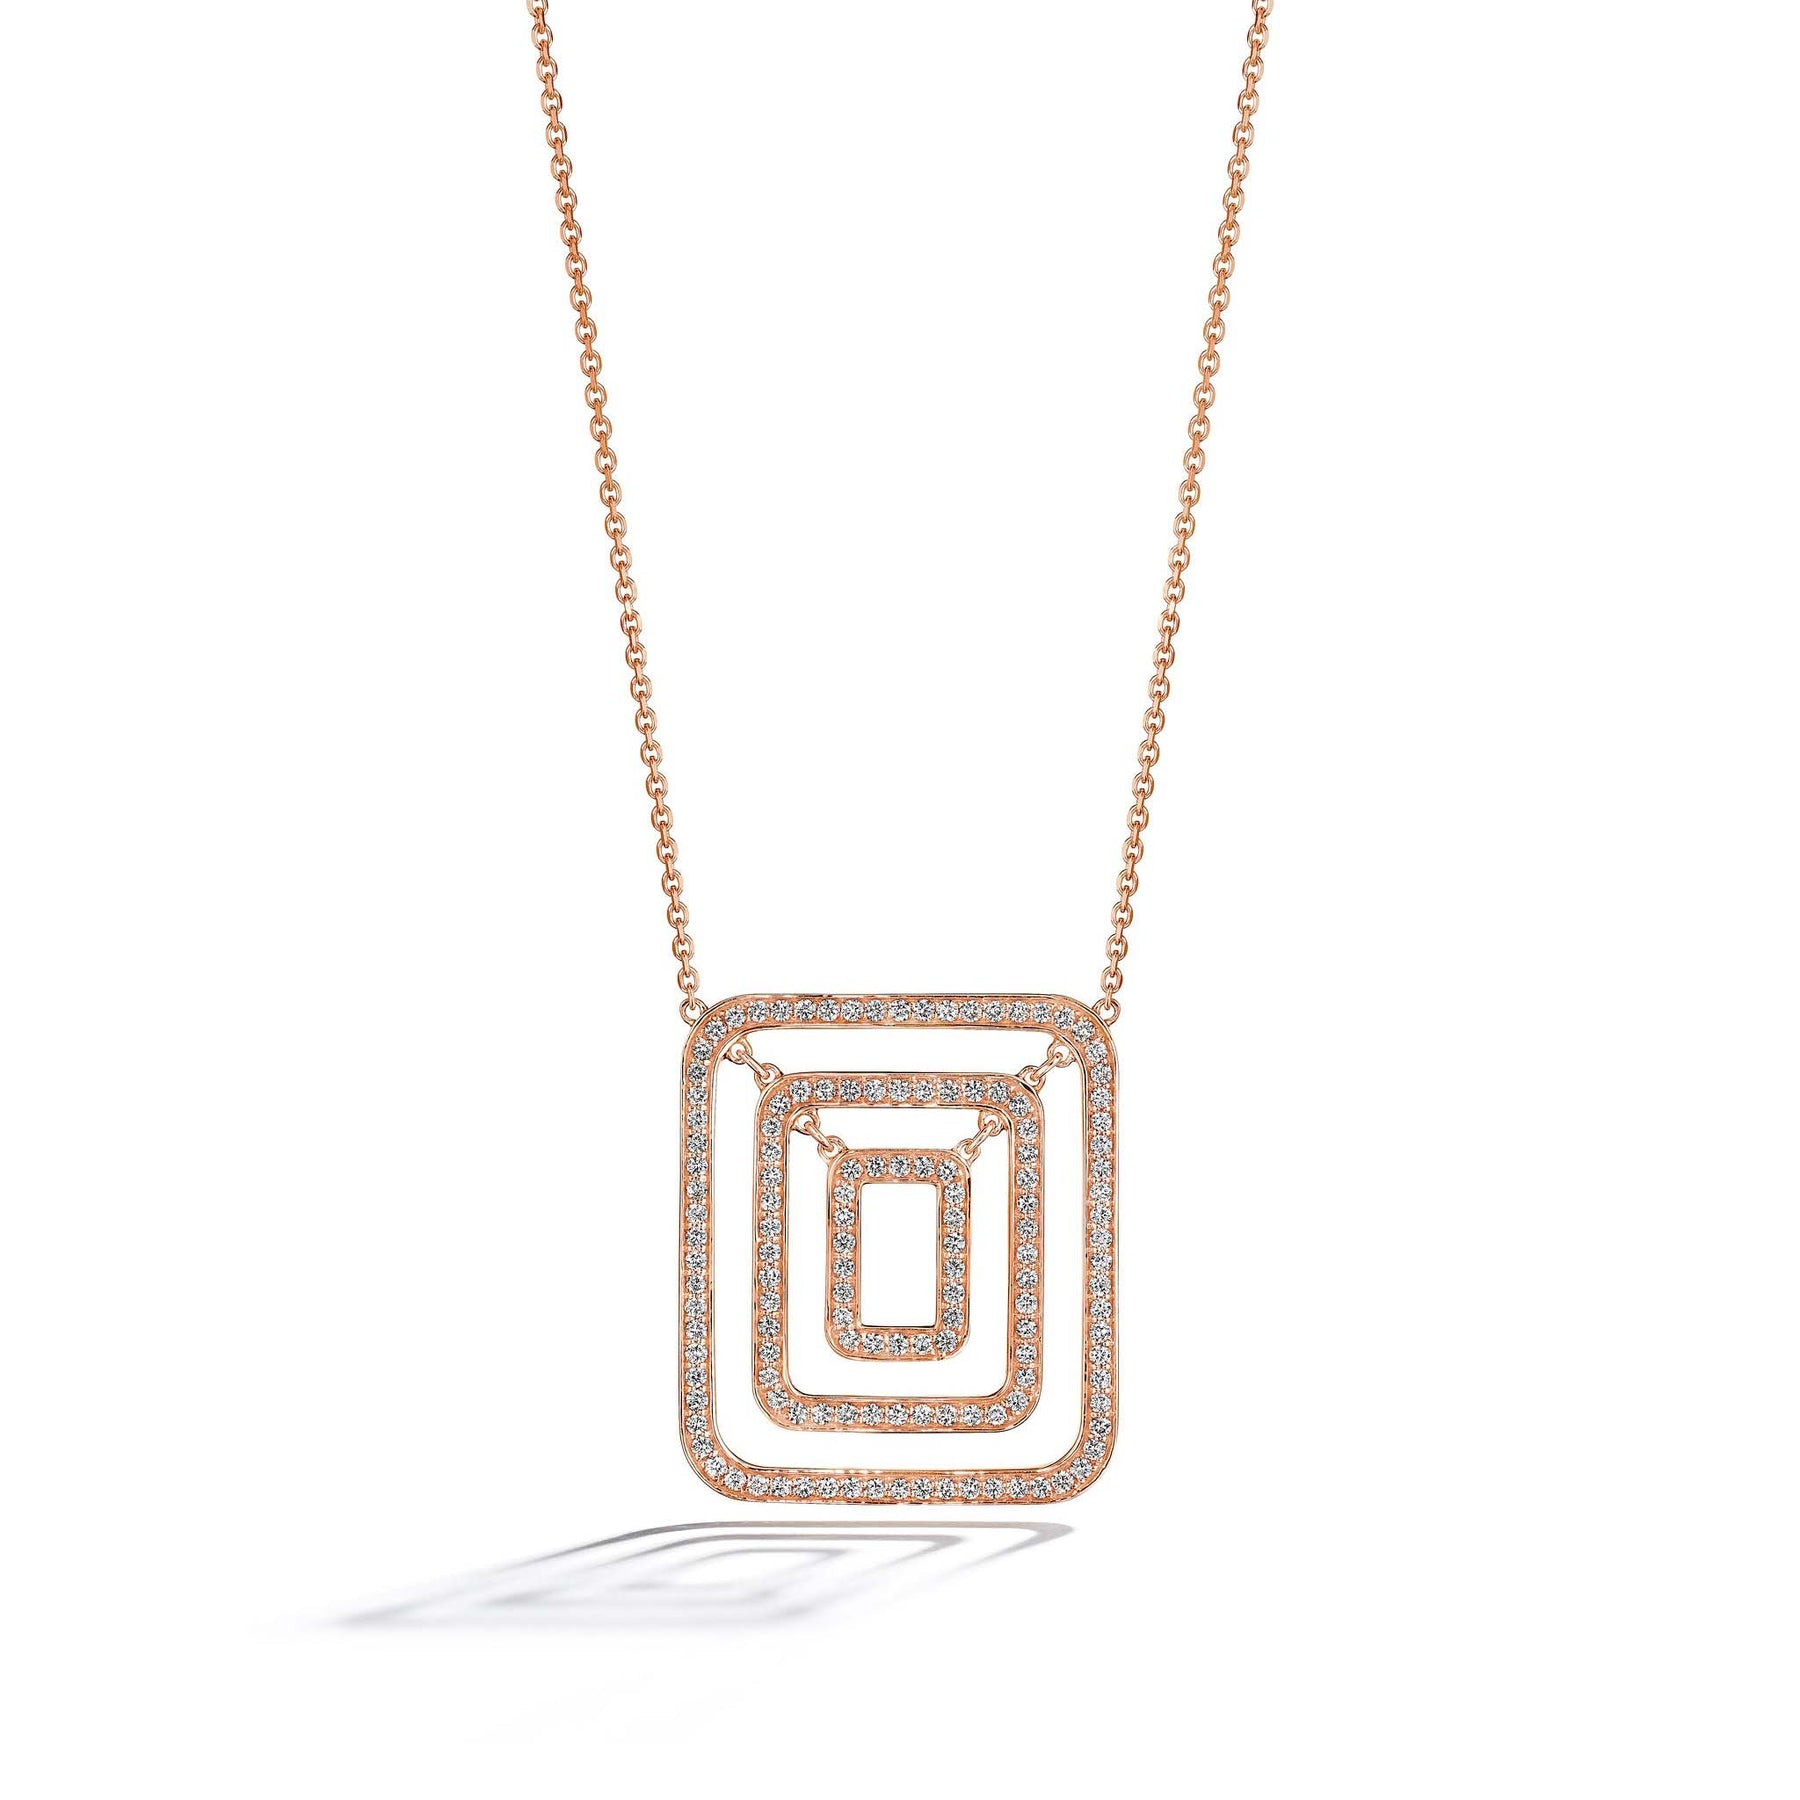 Mimi-So-Piece-Square-Swing-Necklace_18k Rose Gold